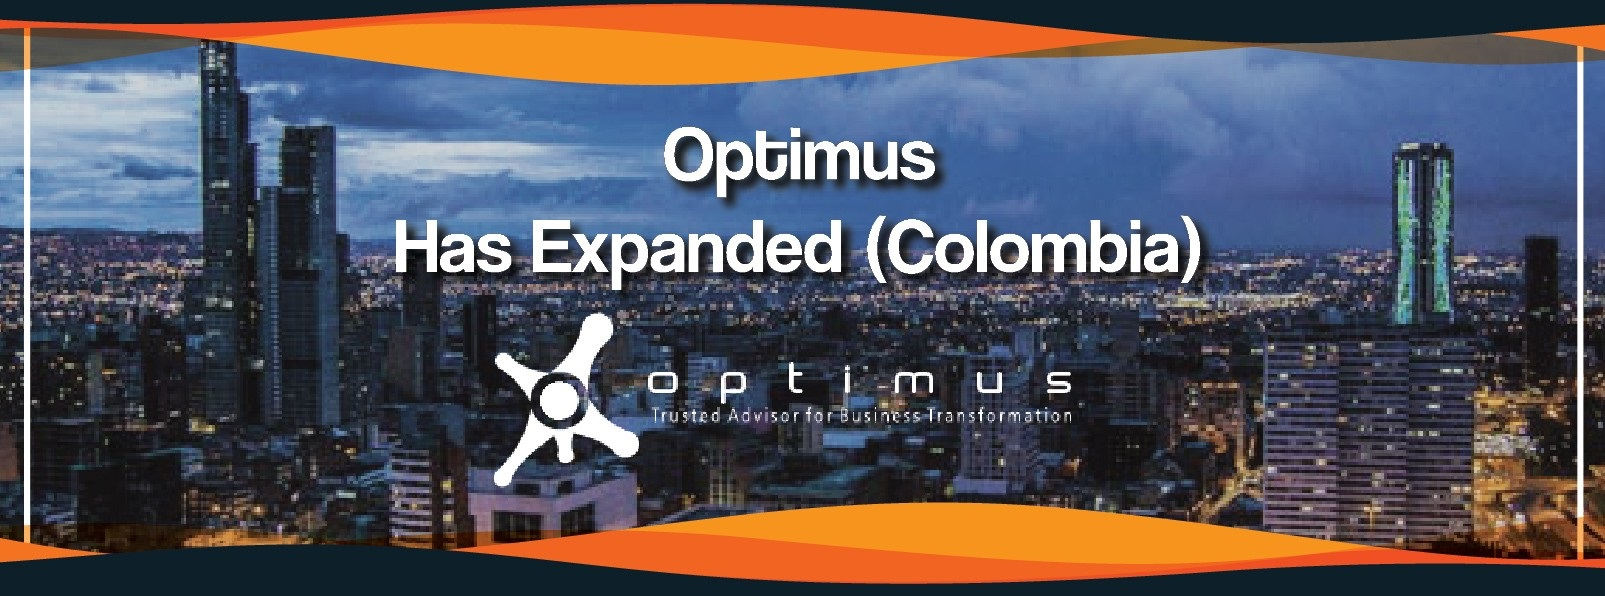 Optimus Has Expanded (Colombia)